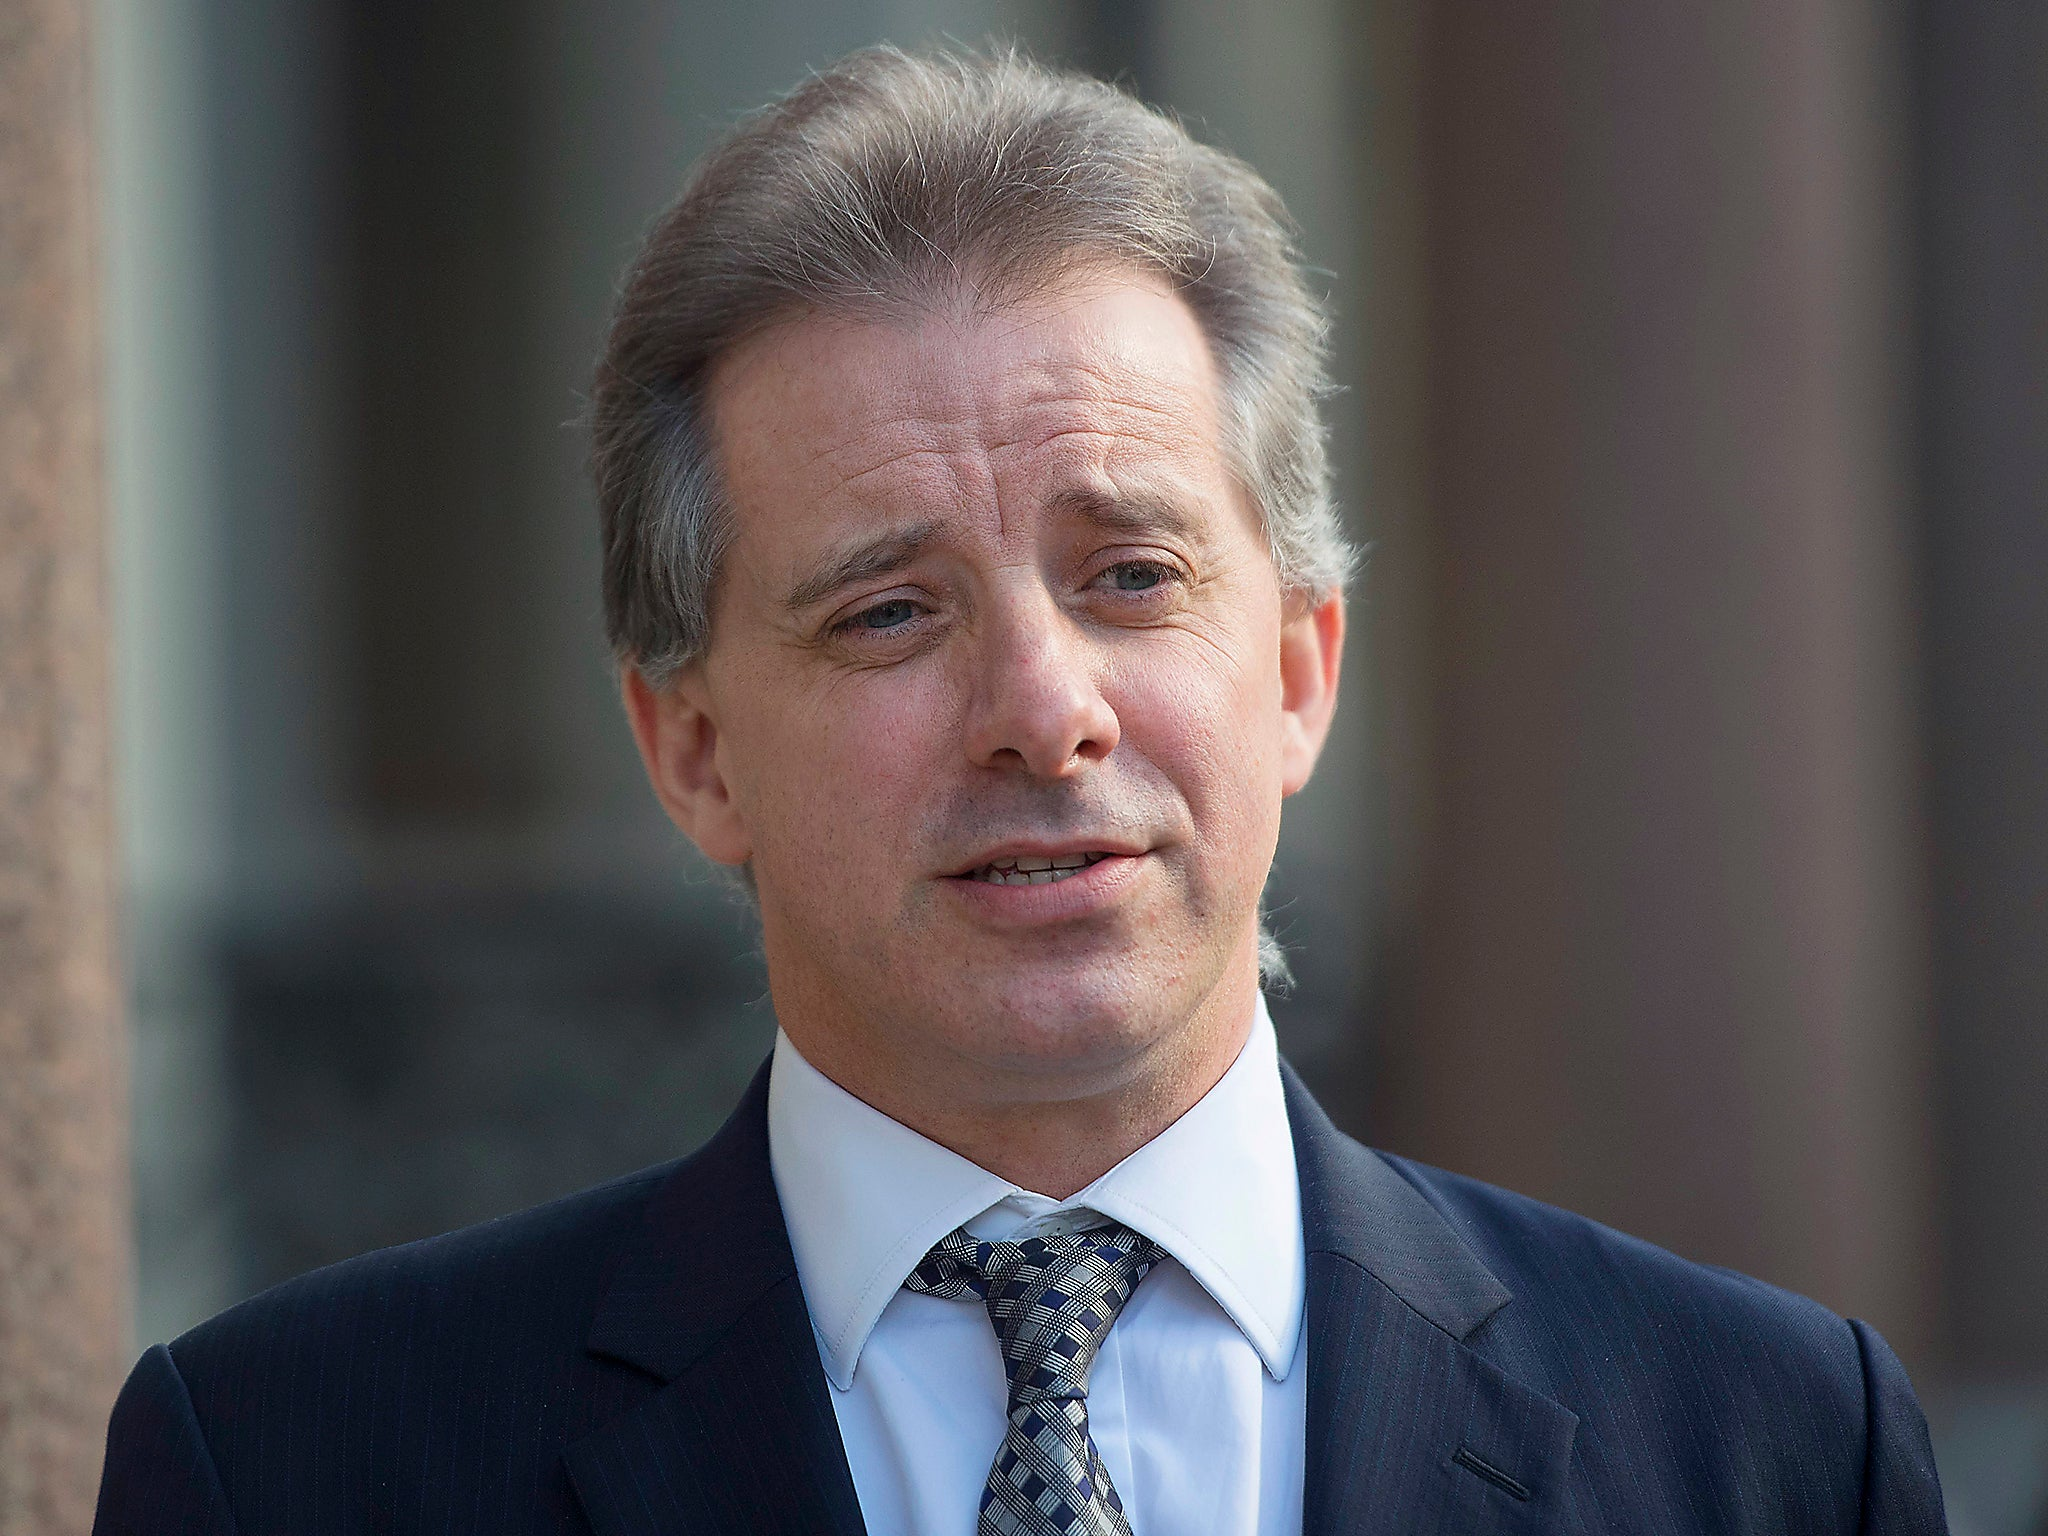 Image result for photos of Christopher steele